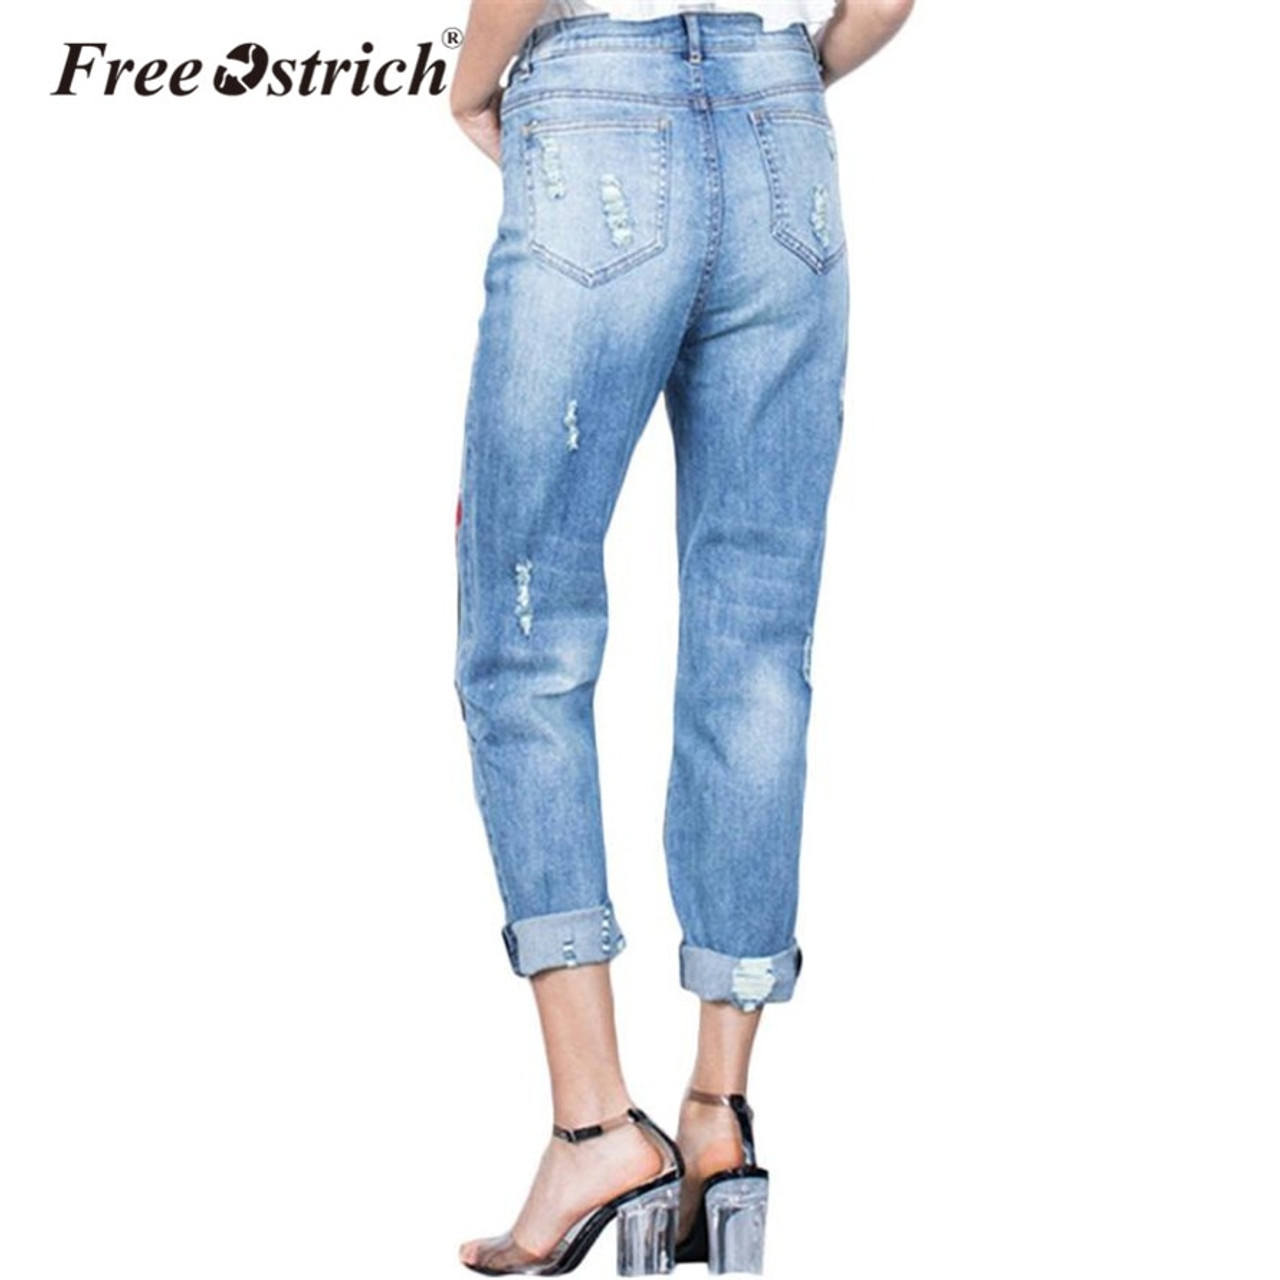 dc912067a8da0 ... Free Ostrich 2018 Plus Size Stretchy Ripped Jeans With Scuffs 3D  Embroidery Flowers Woman Denim Pants ...